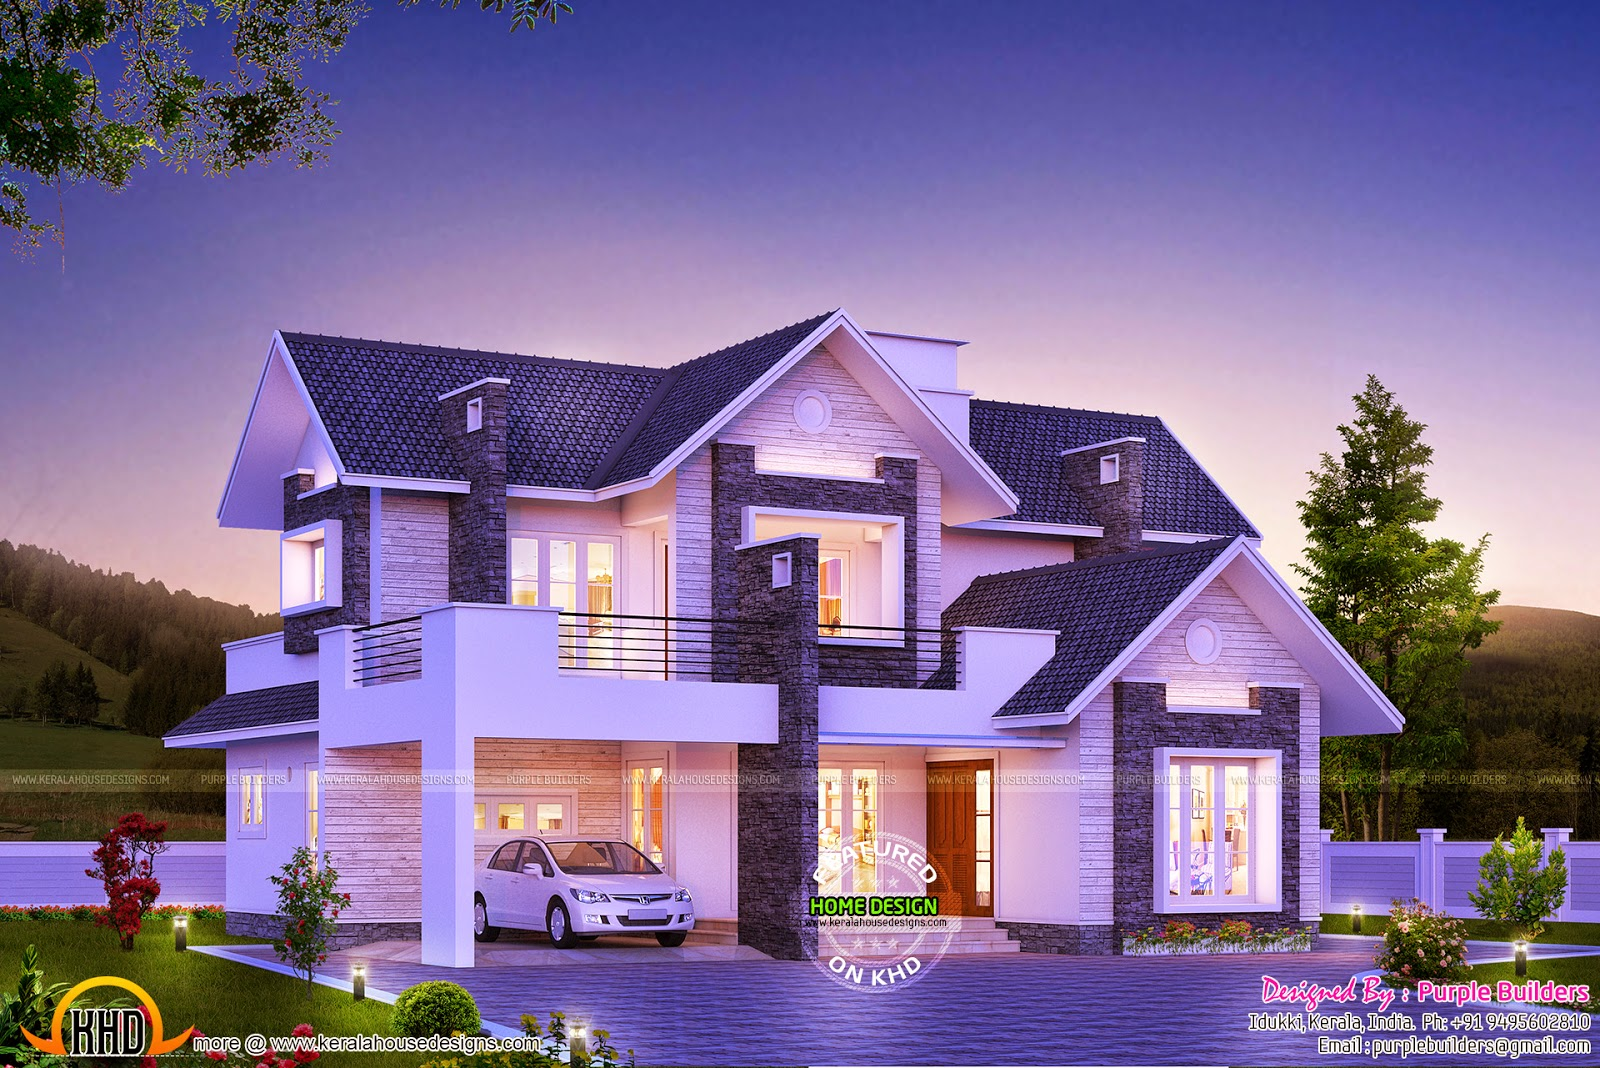 Super dream home kerala home design and floor plans for Design this house